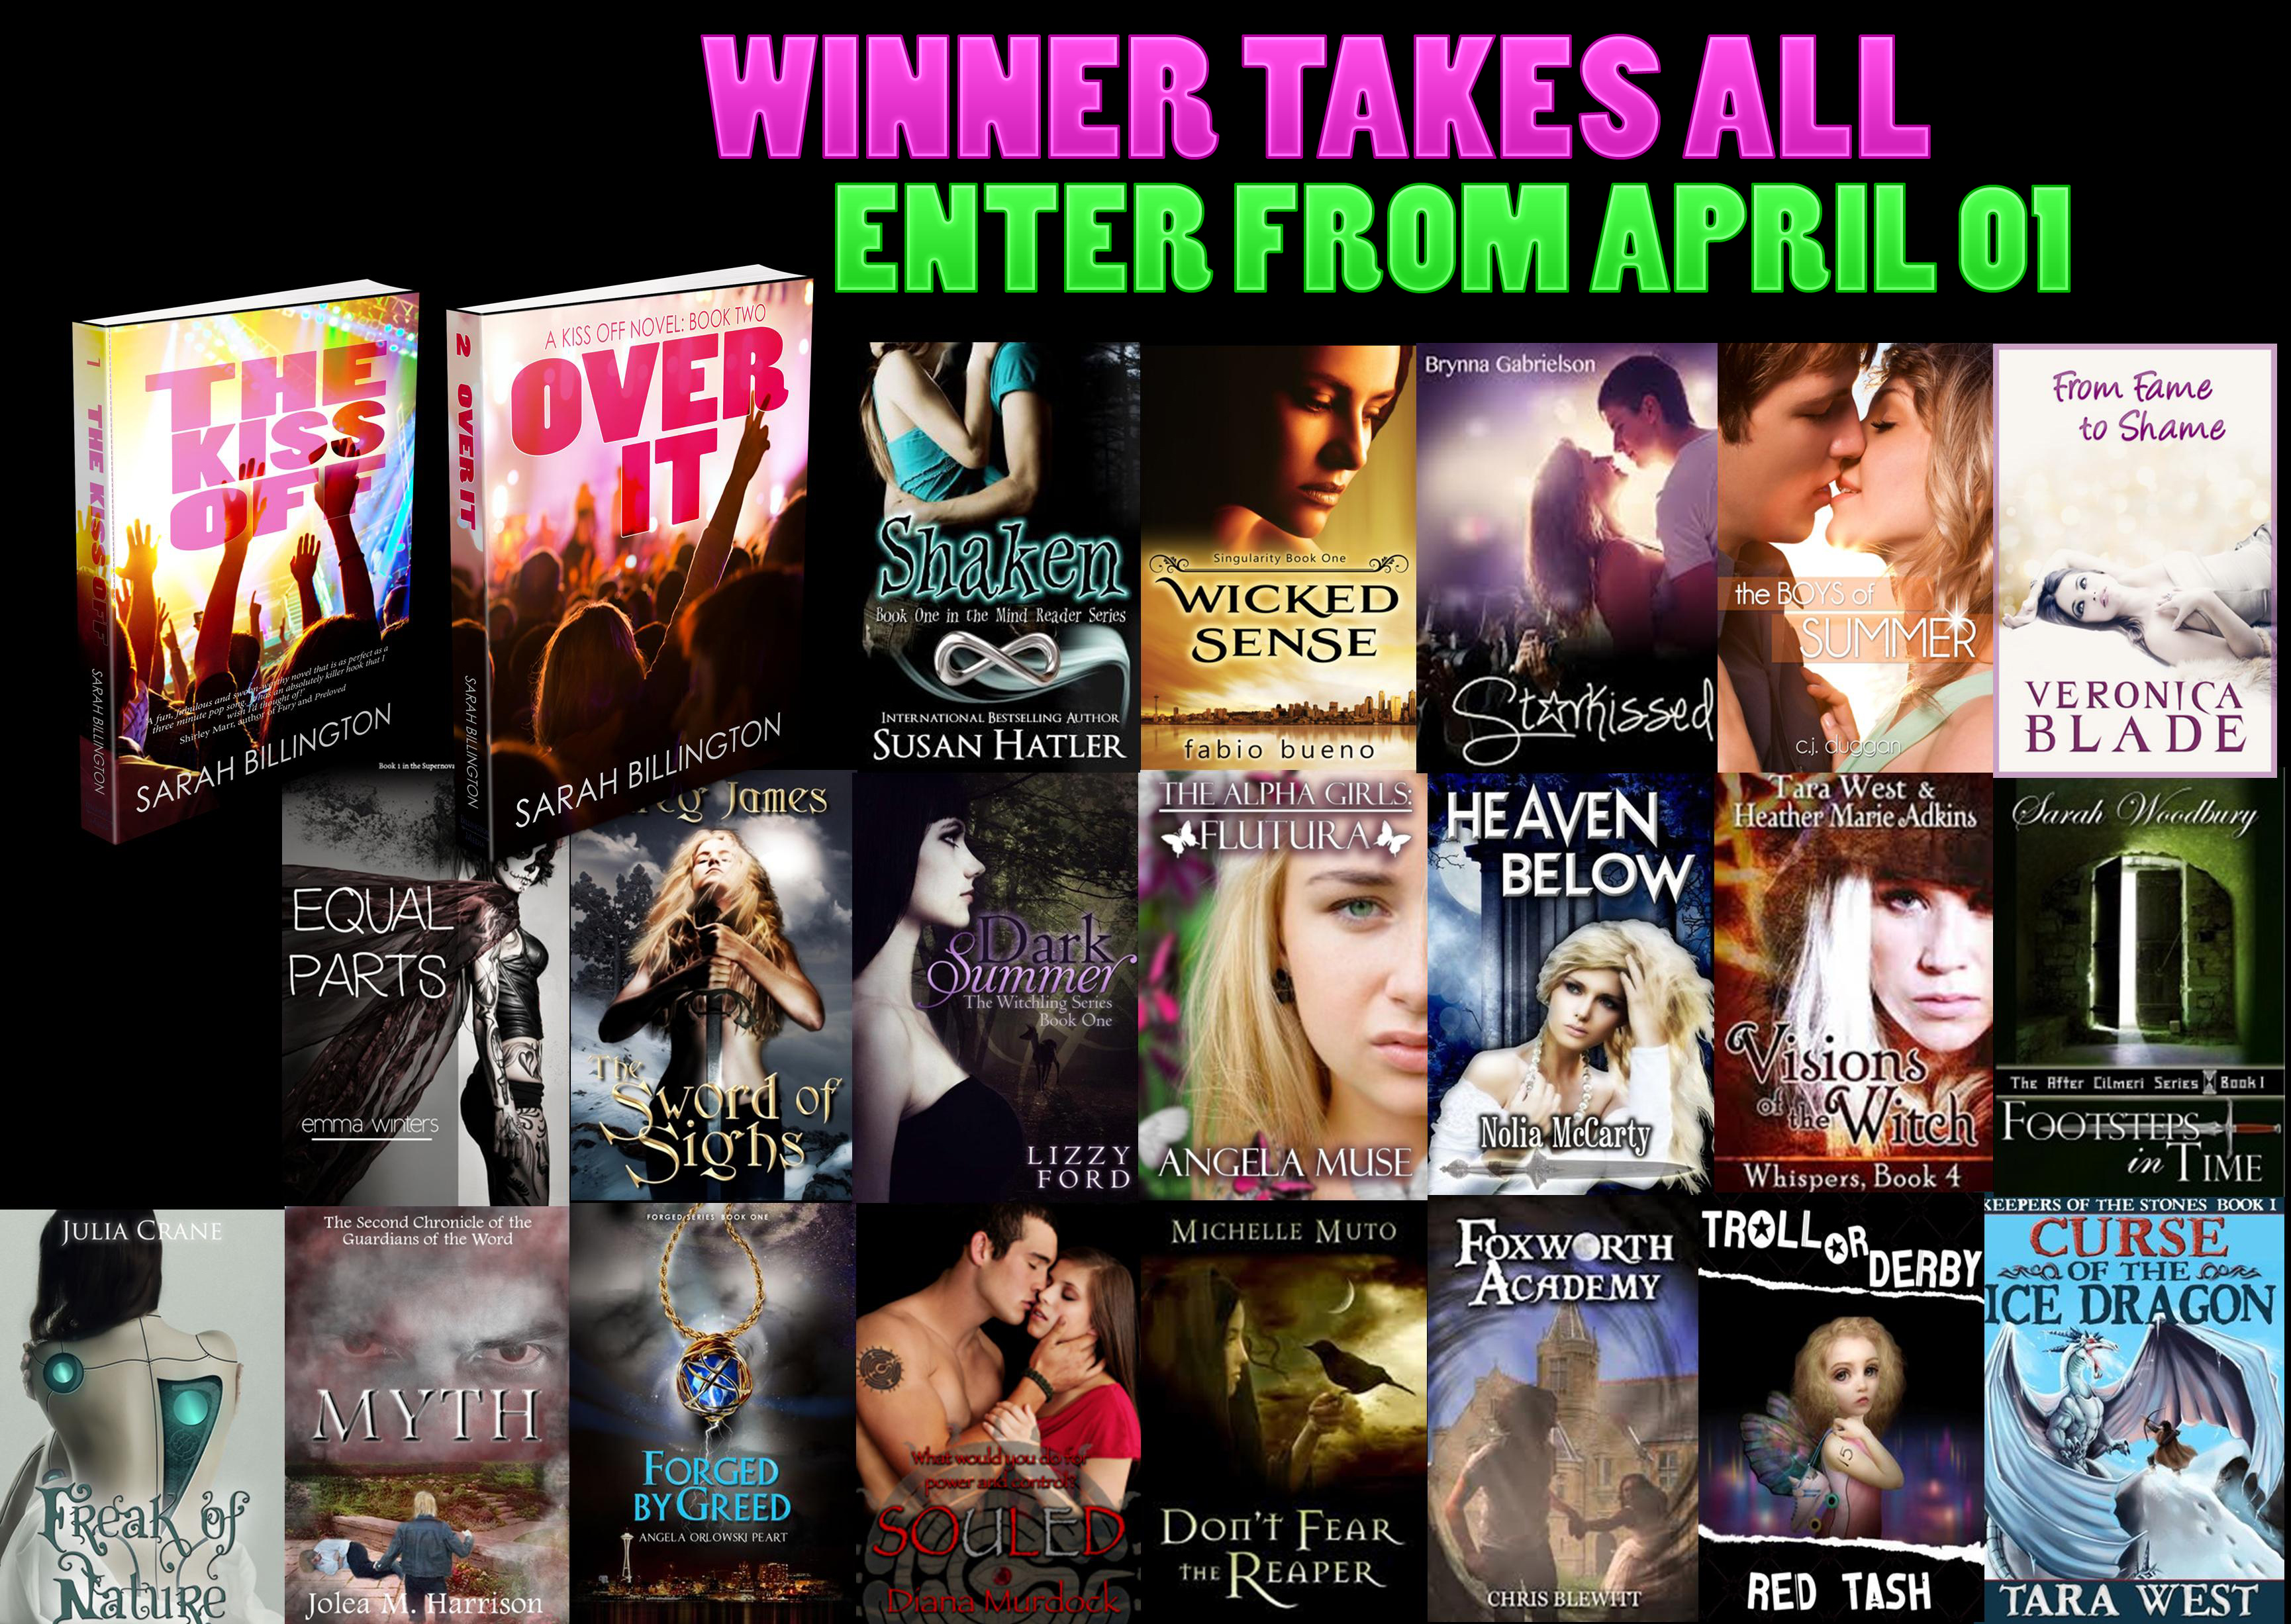 april 1 2013 cover reveal giveaway